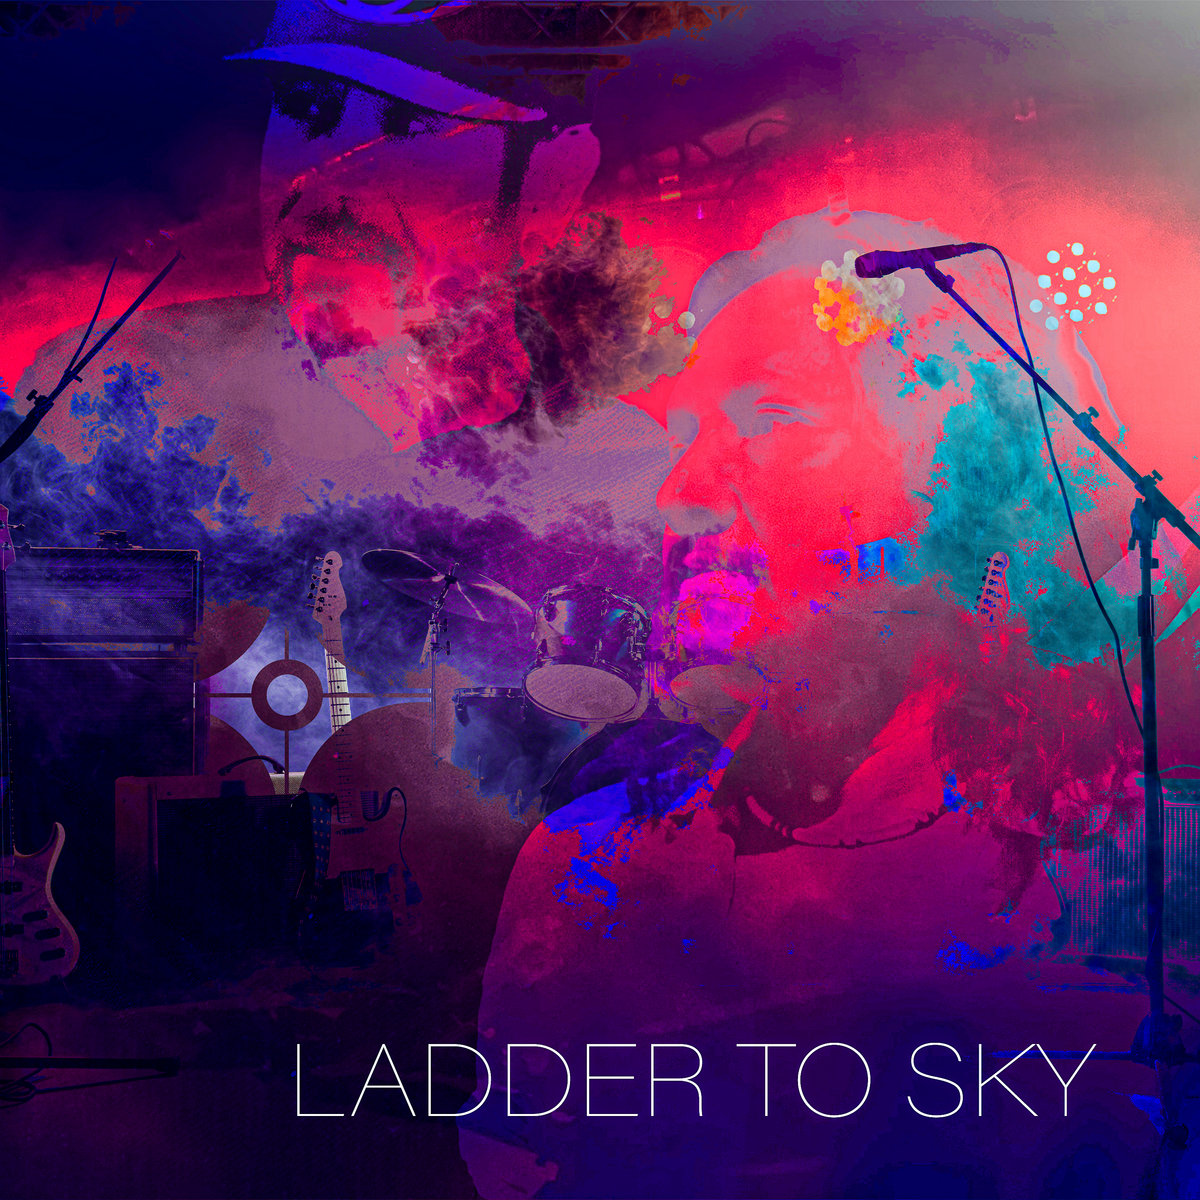 Ladder to Sky by Icons of Industry